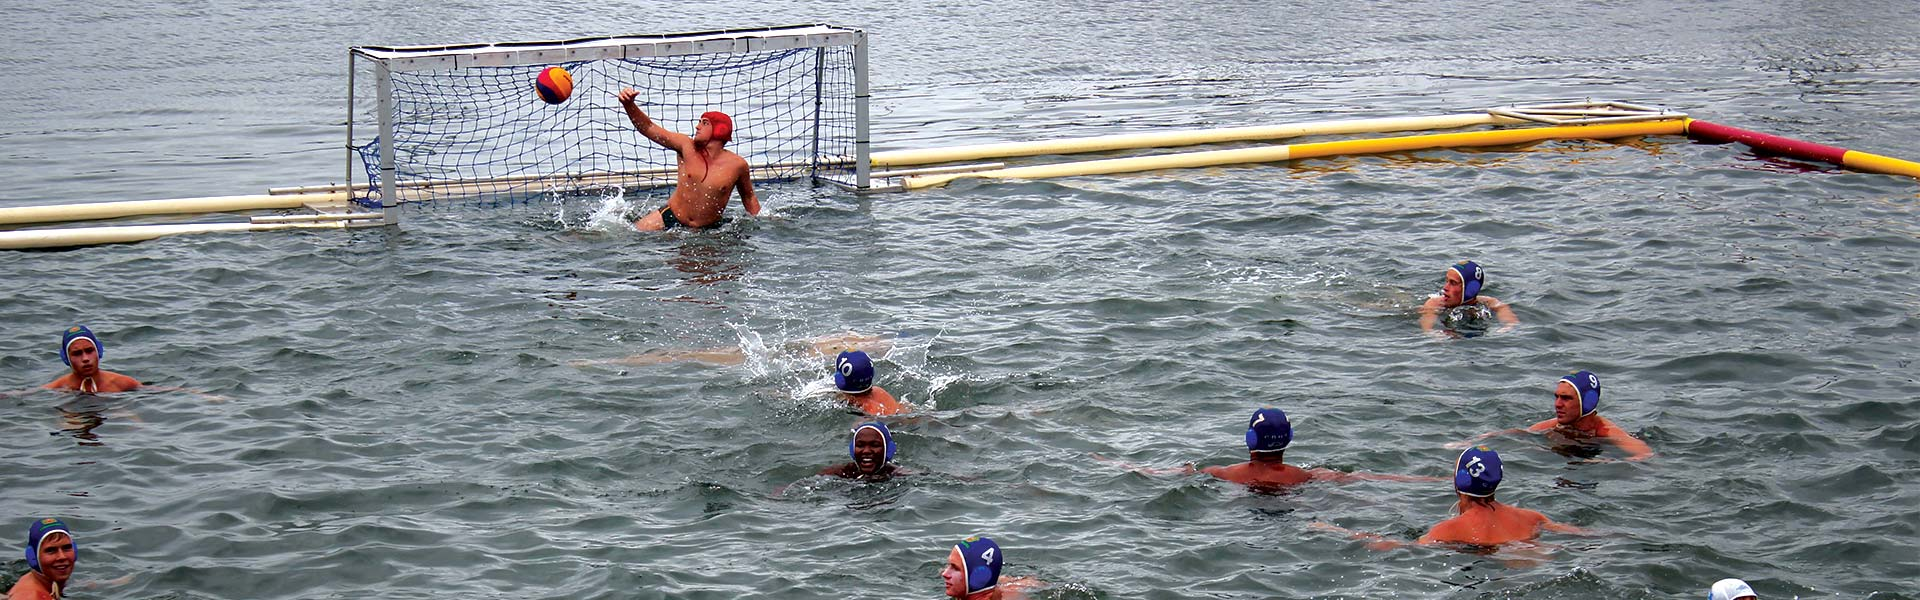 Camps Bay High School - Waterpolo